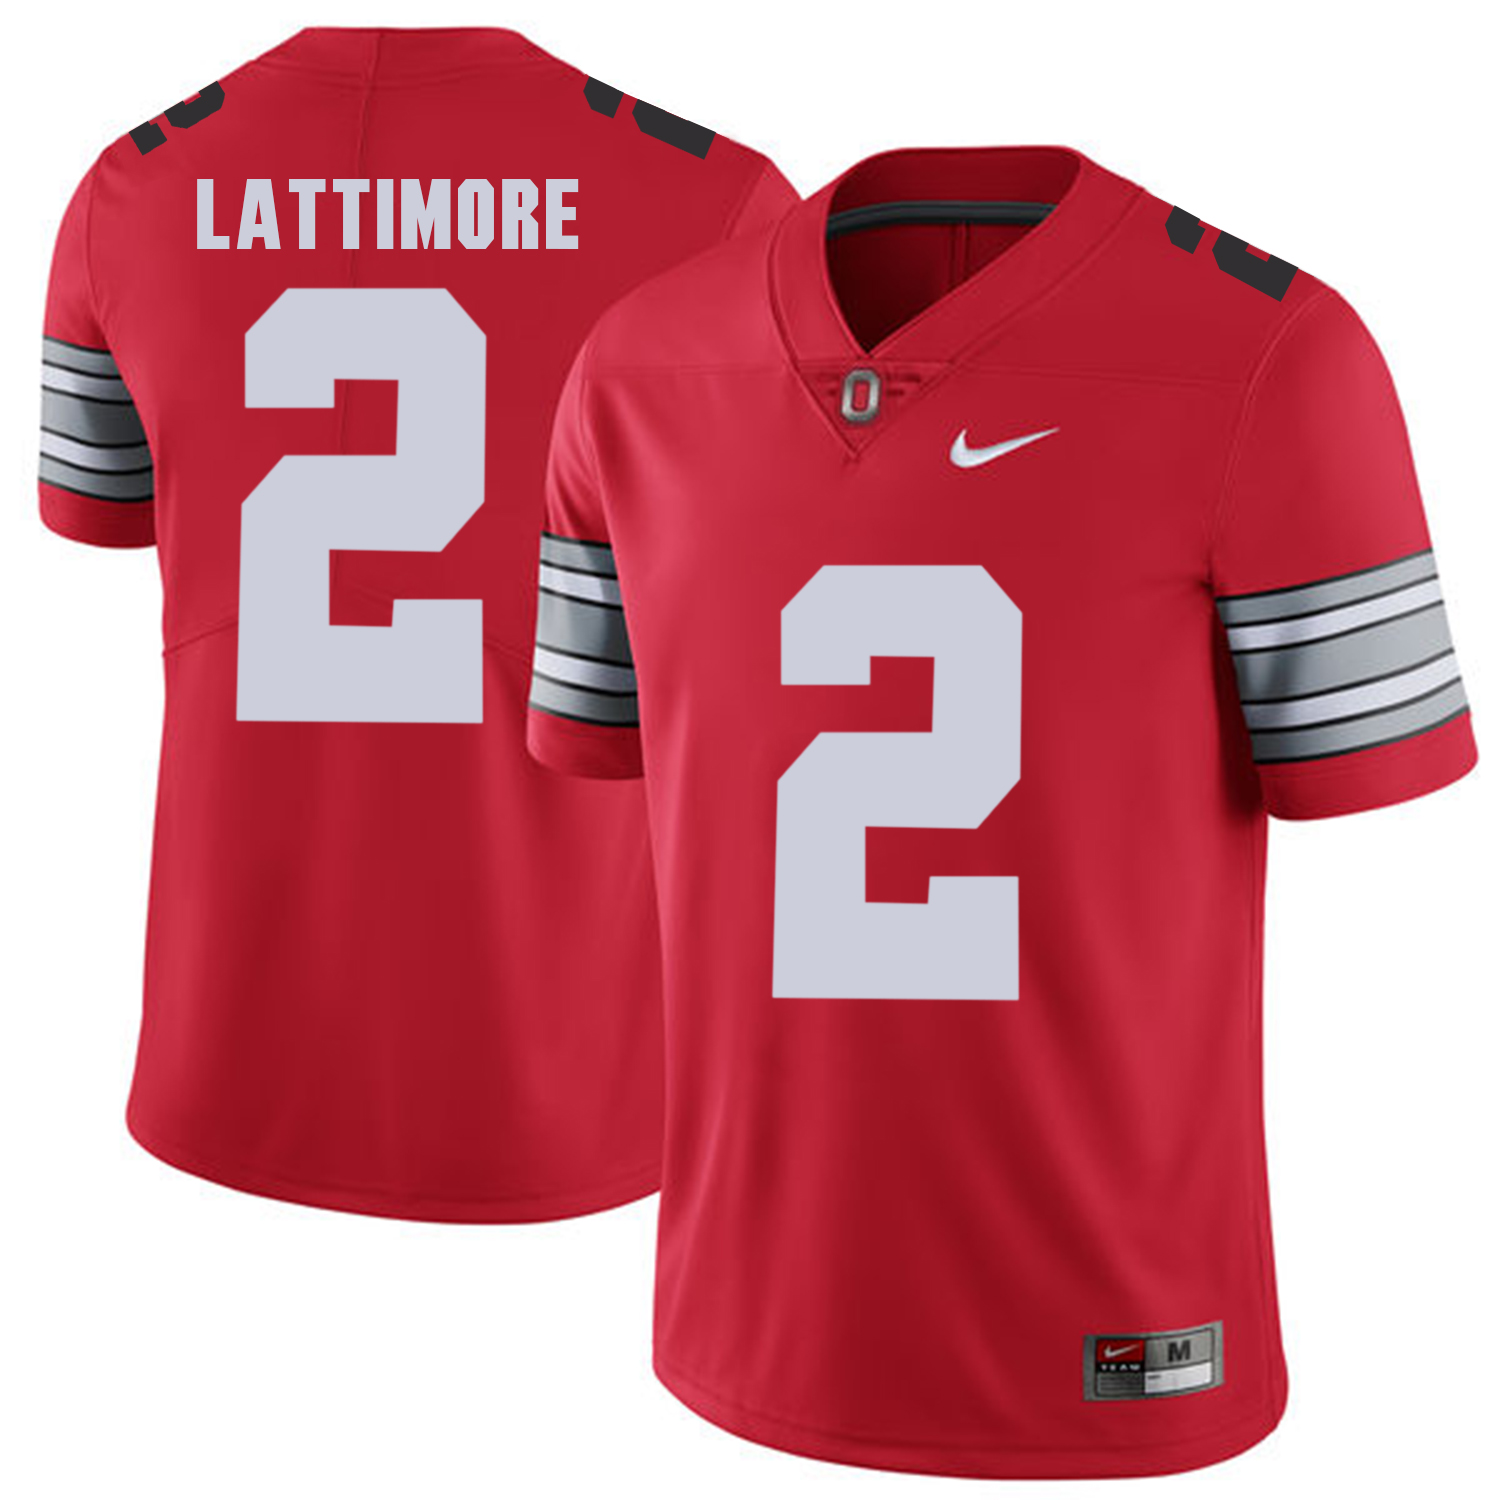 Men Ohio State 2 Lattimore Red Customized NCAA Jerseys